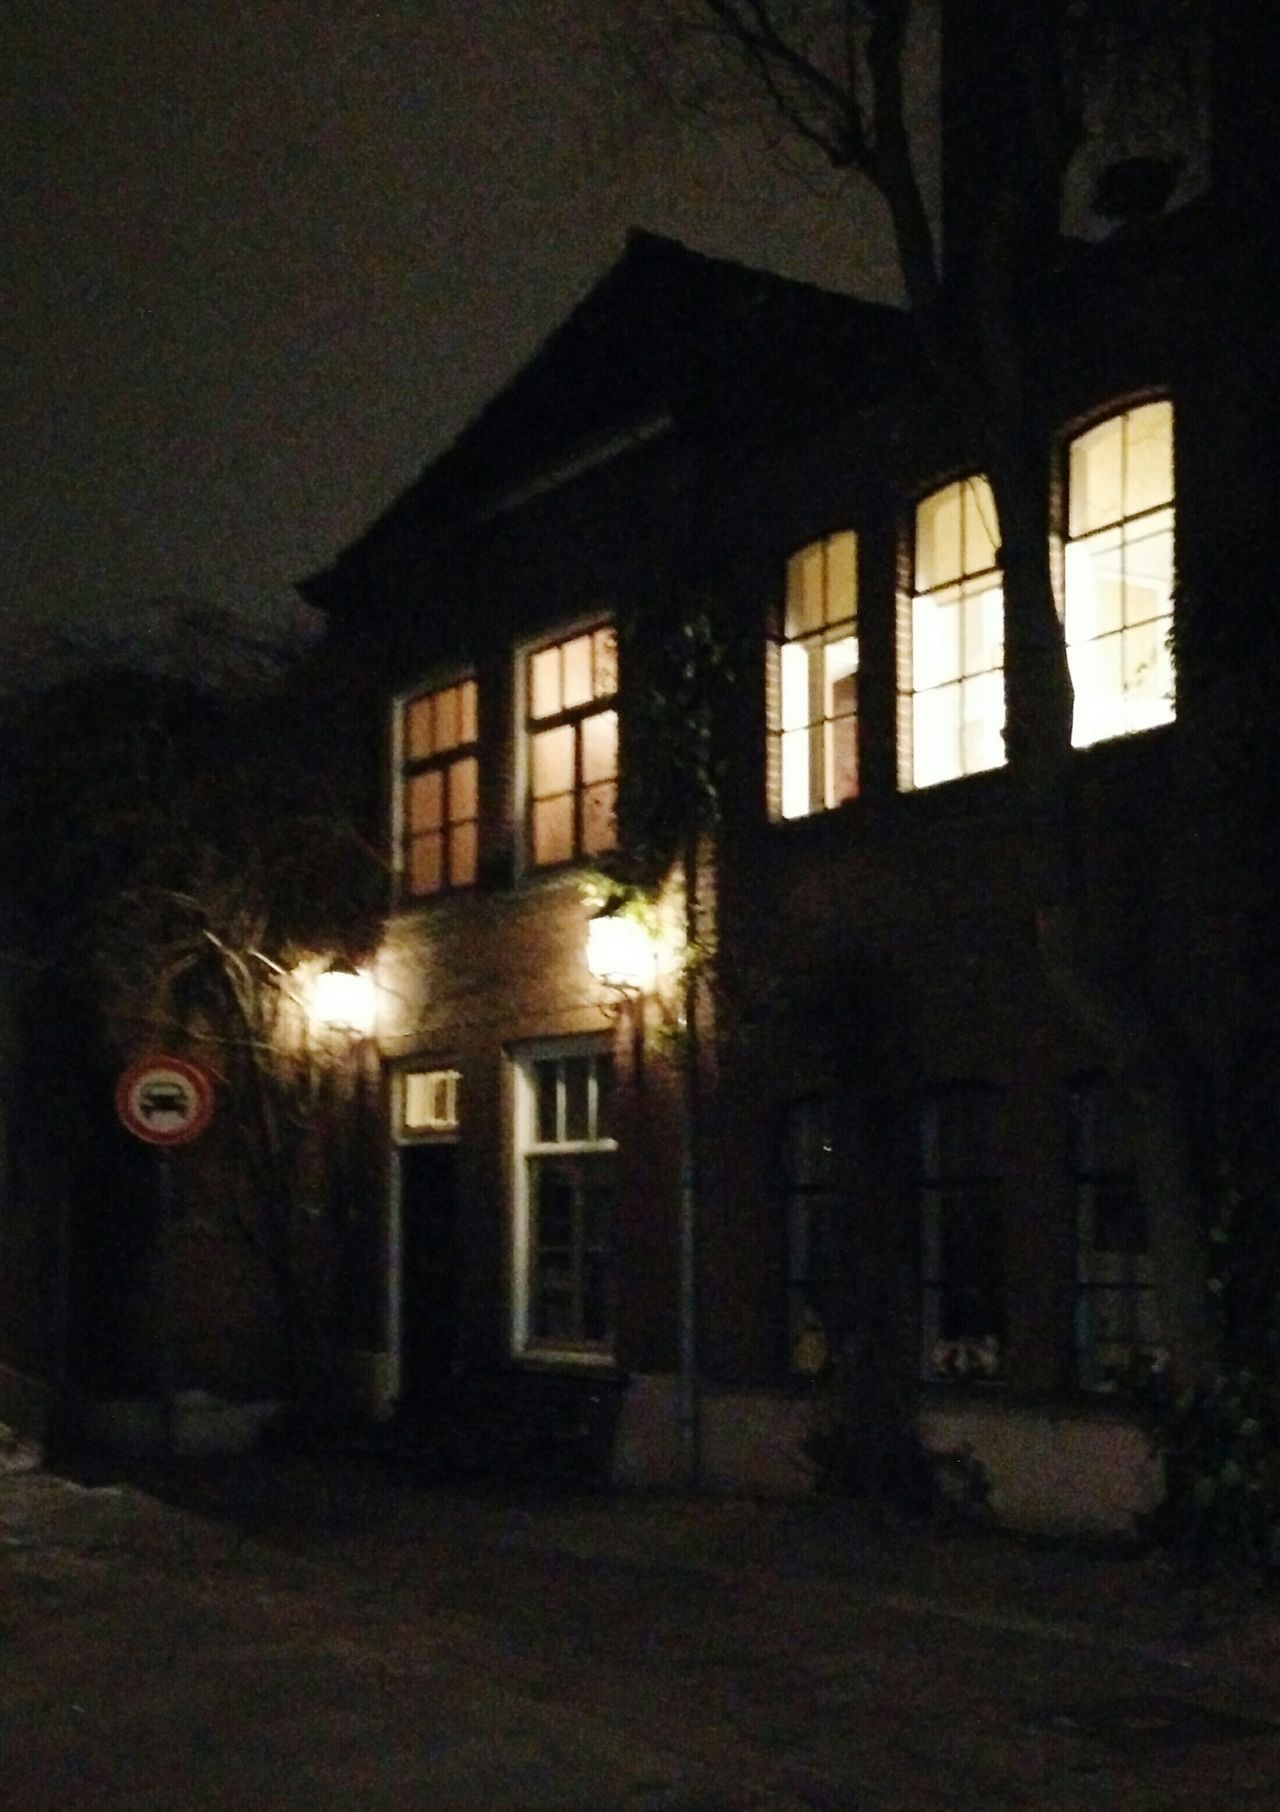 Lighted Windows Old Street Old House Night Photography Street Photography Mobile Phone Photography Night City